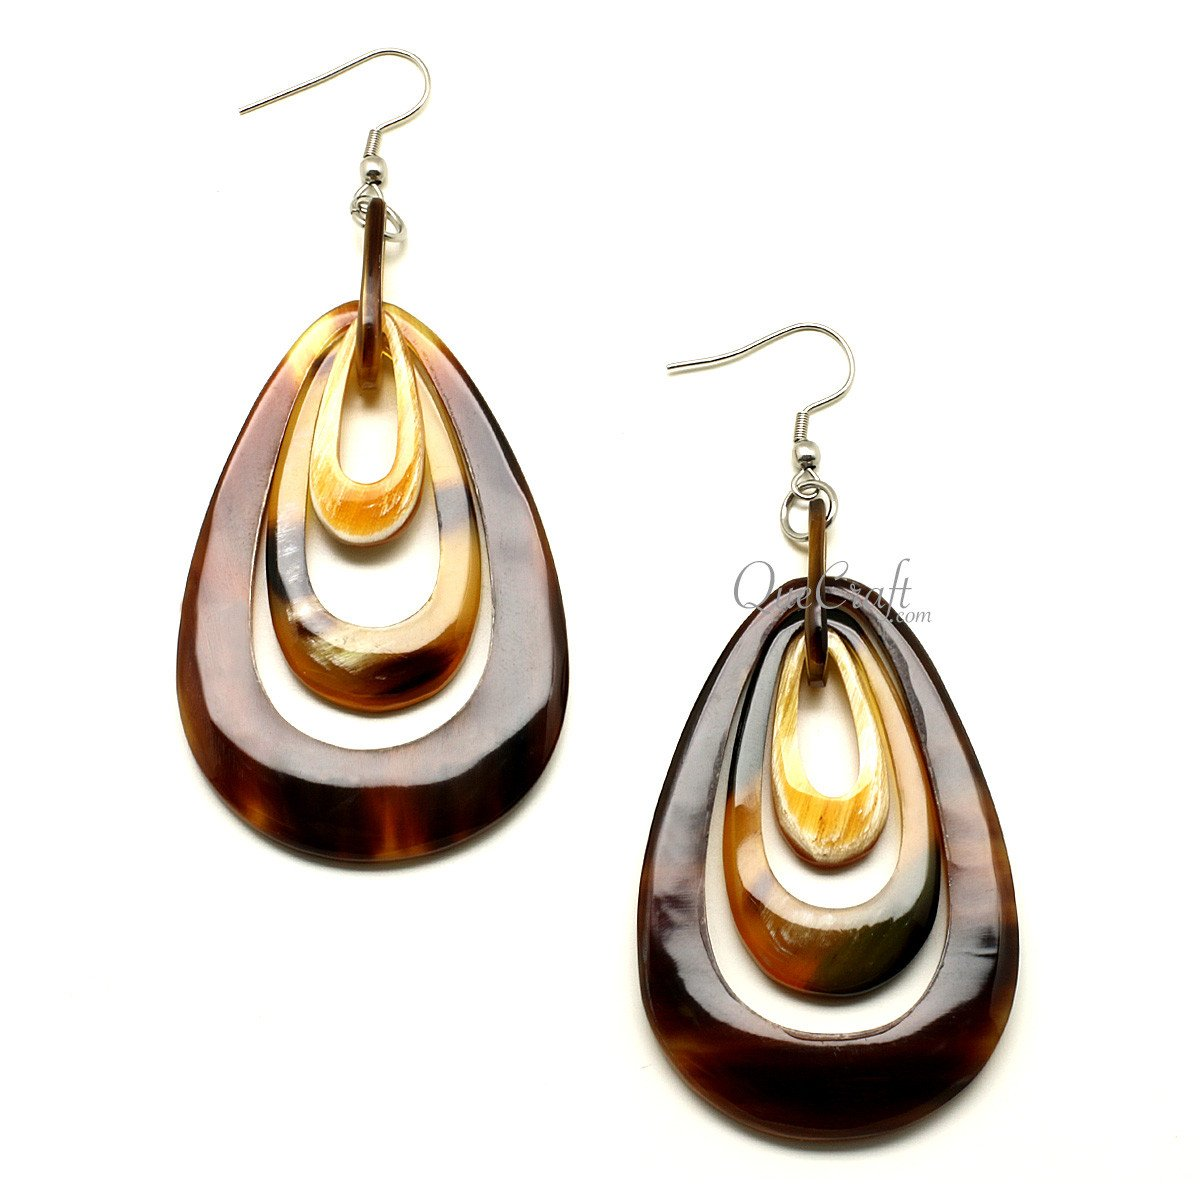 Horn Earrings #12287 - HORN.JEWELRY